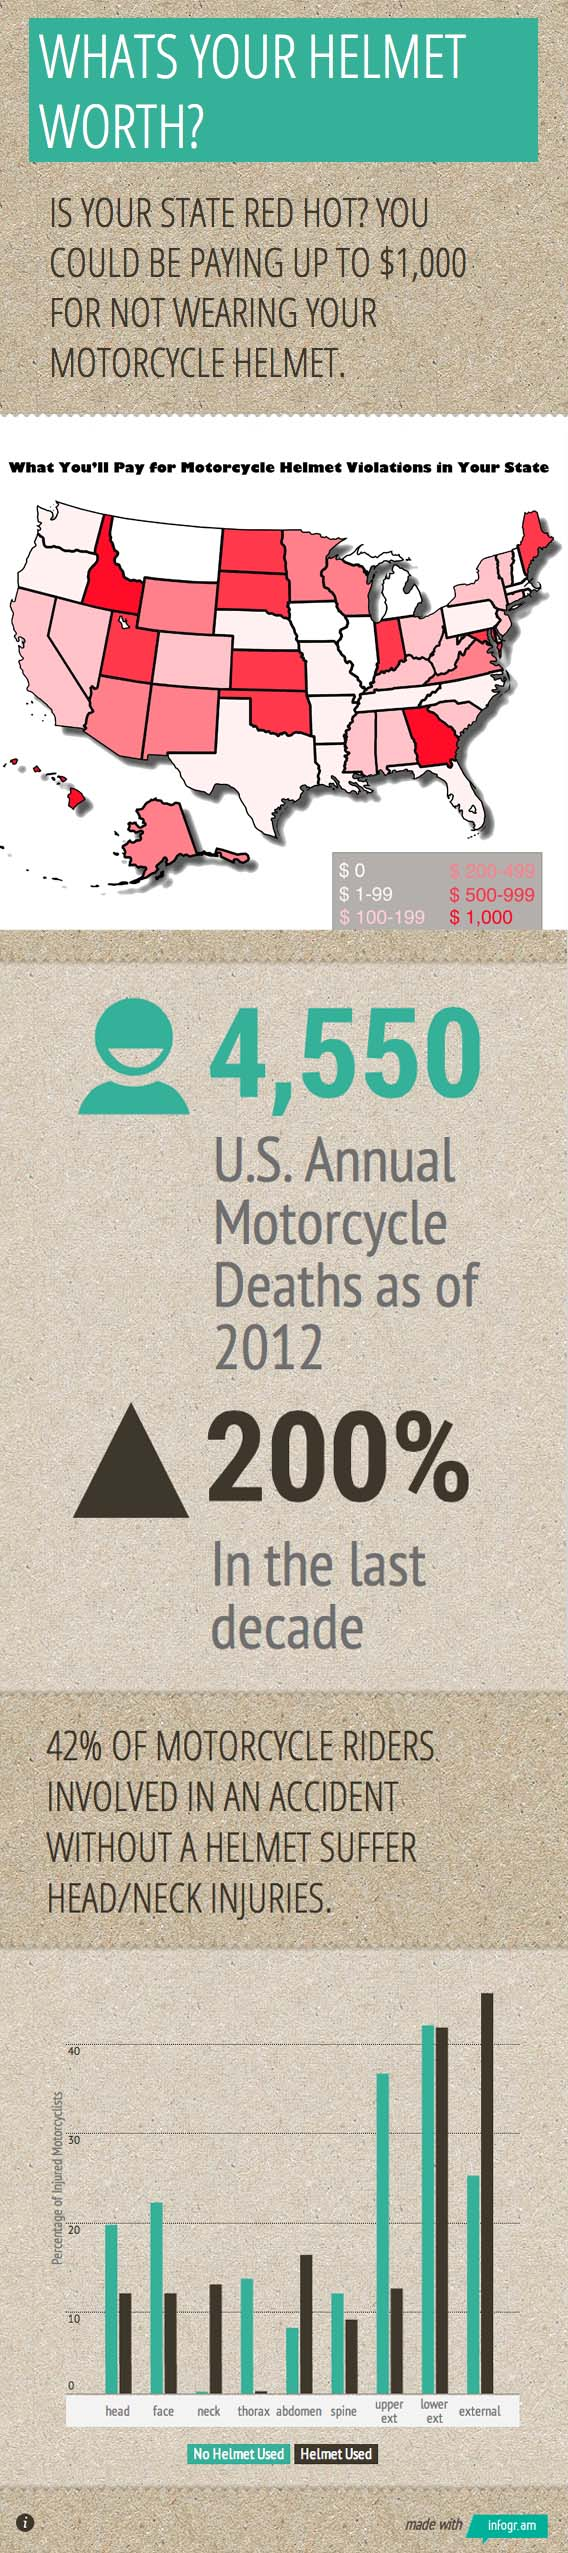 Motorcycle Helmet Laws By State Map Check Out More Barbecue Tips